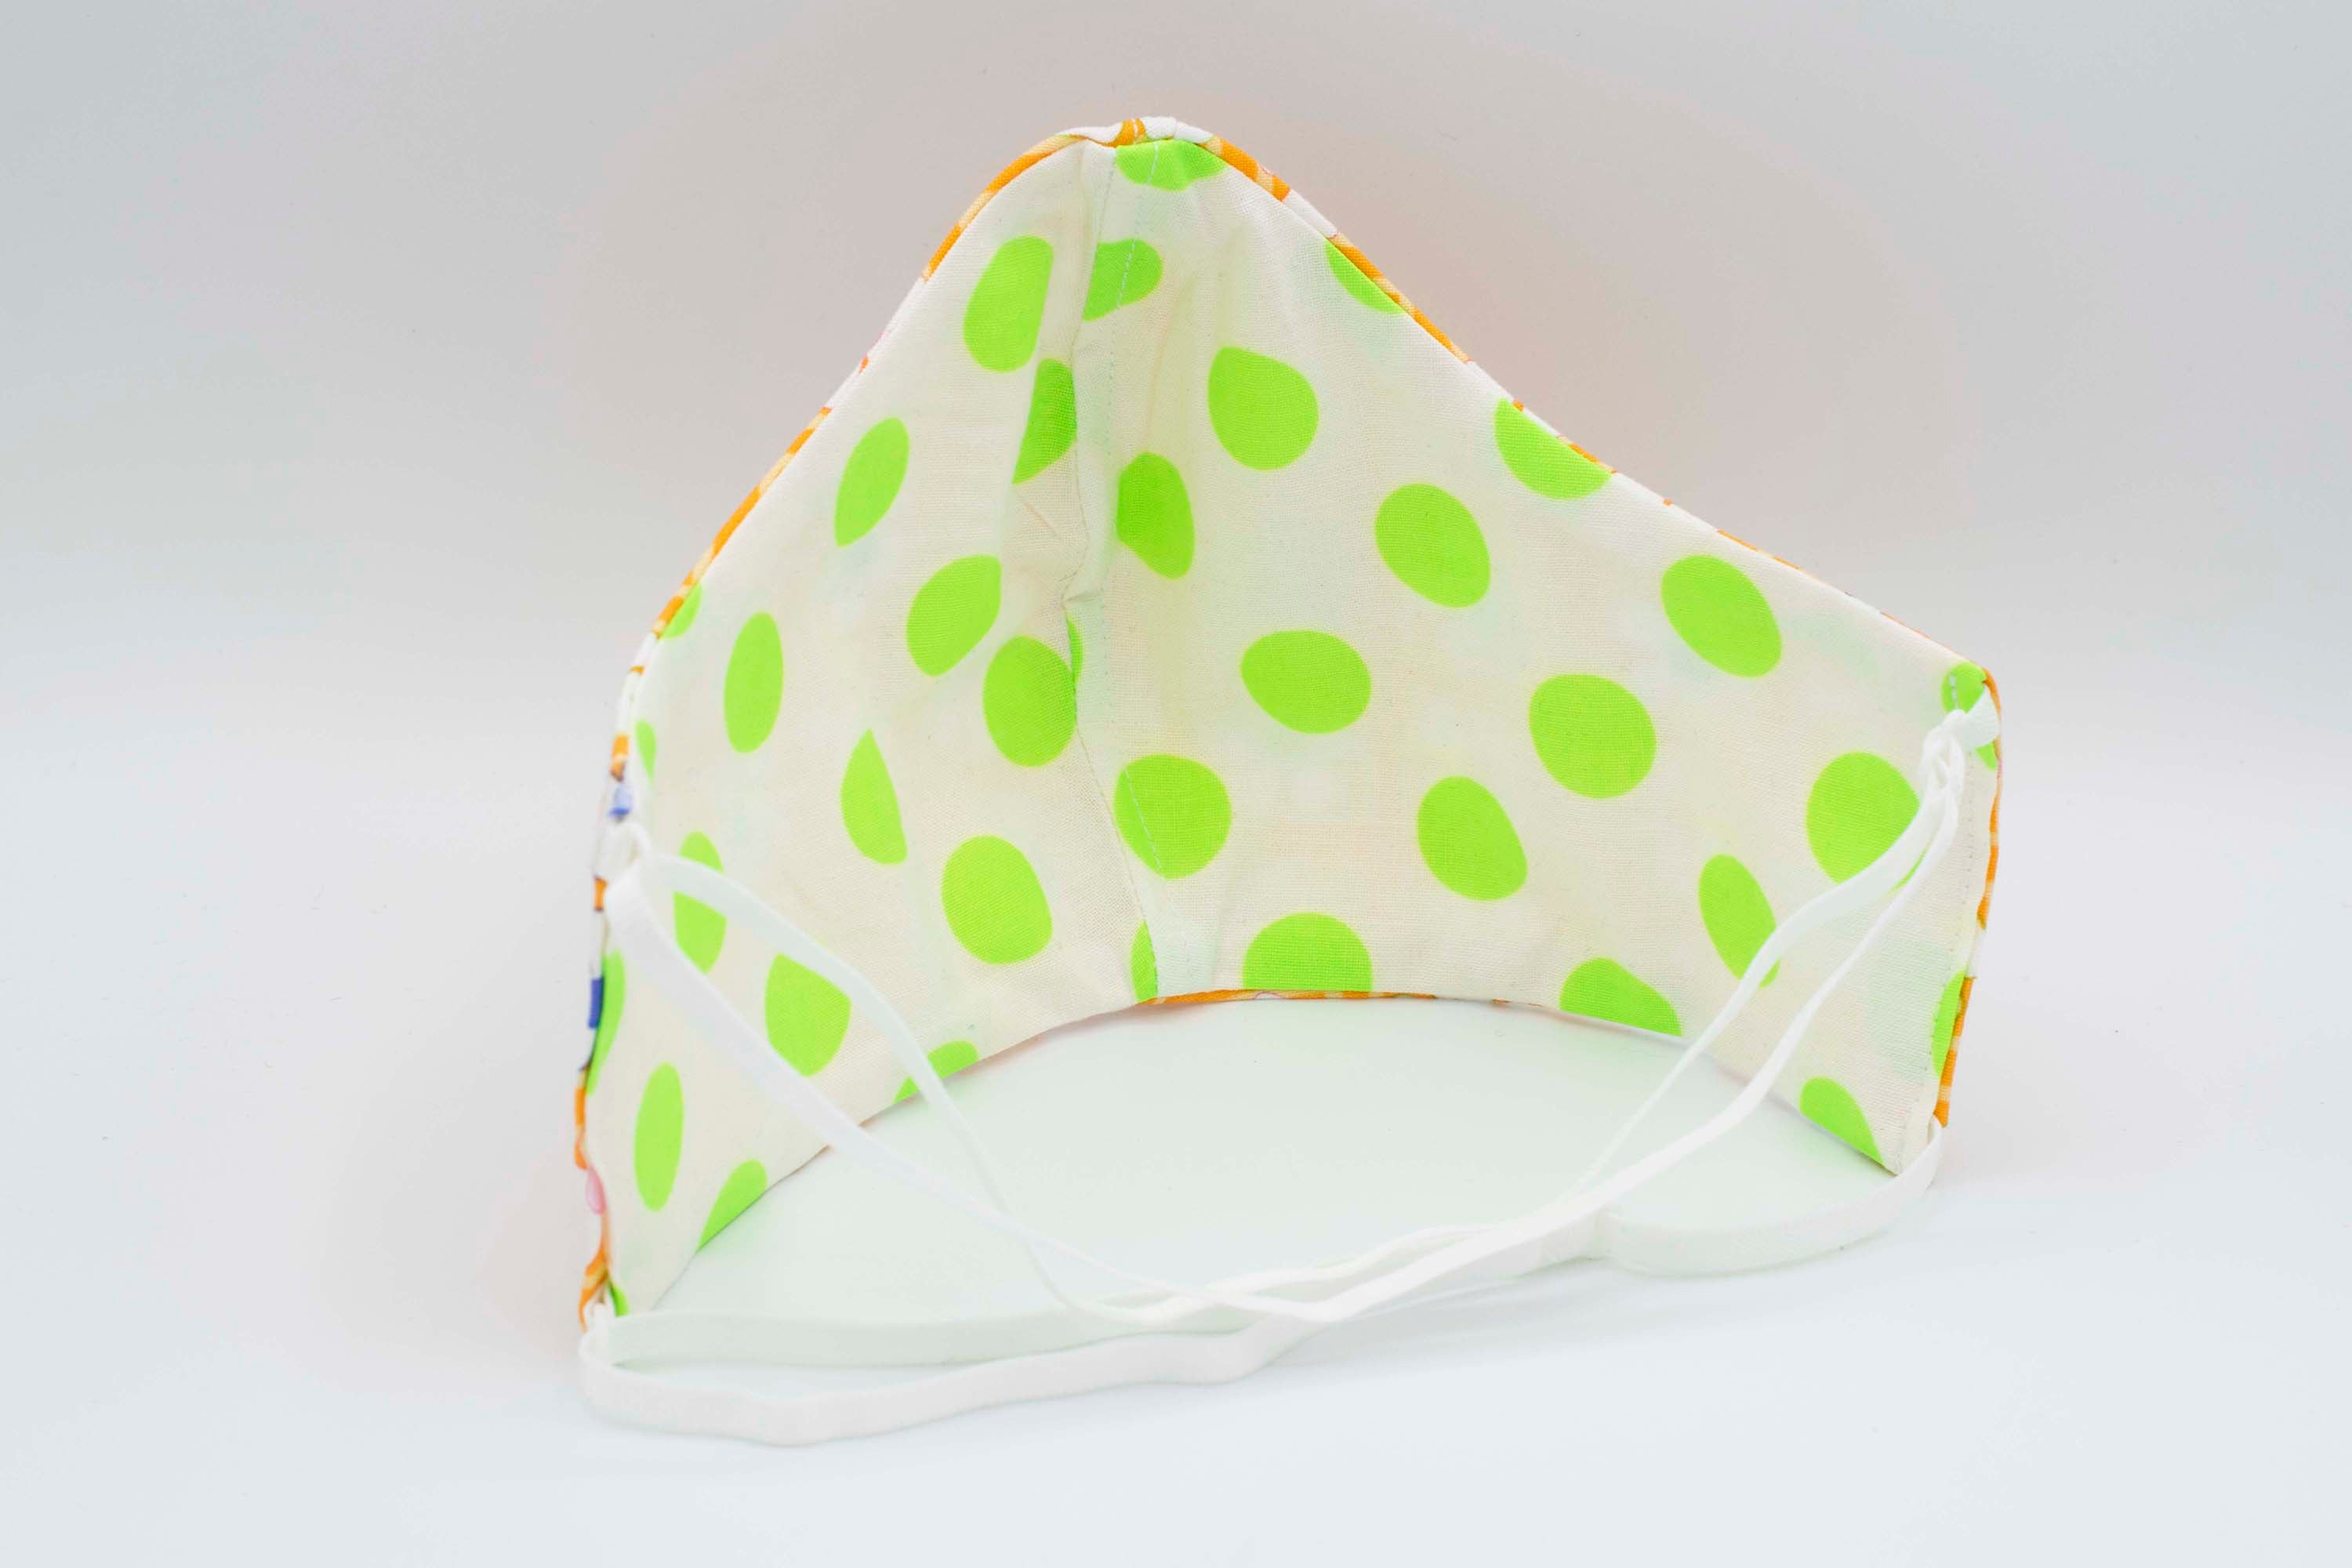 Reversible Retro Daisy and Neon Polka Dot - 2 Masks for the Price of 1